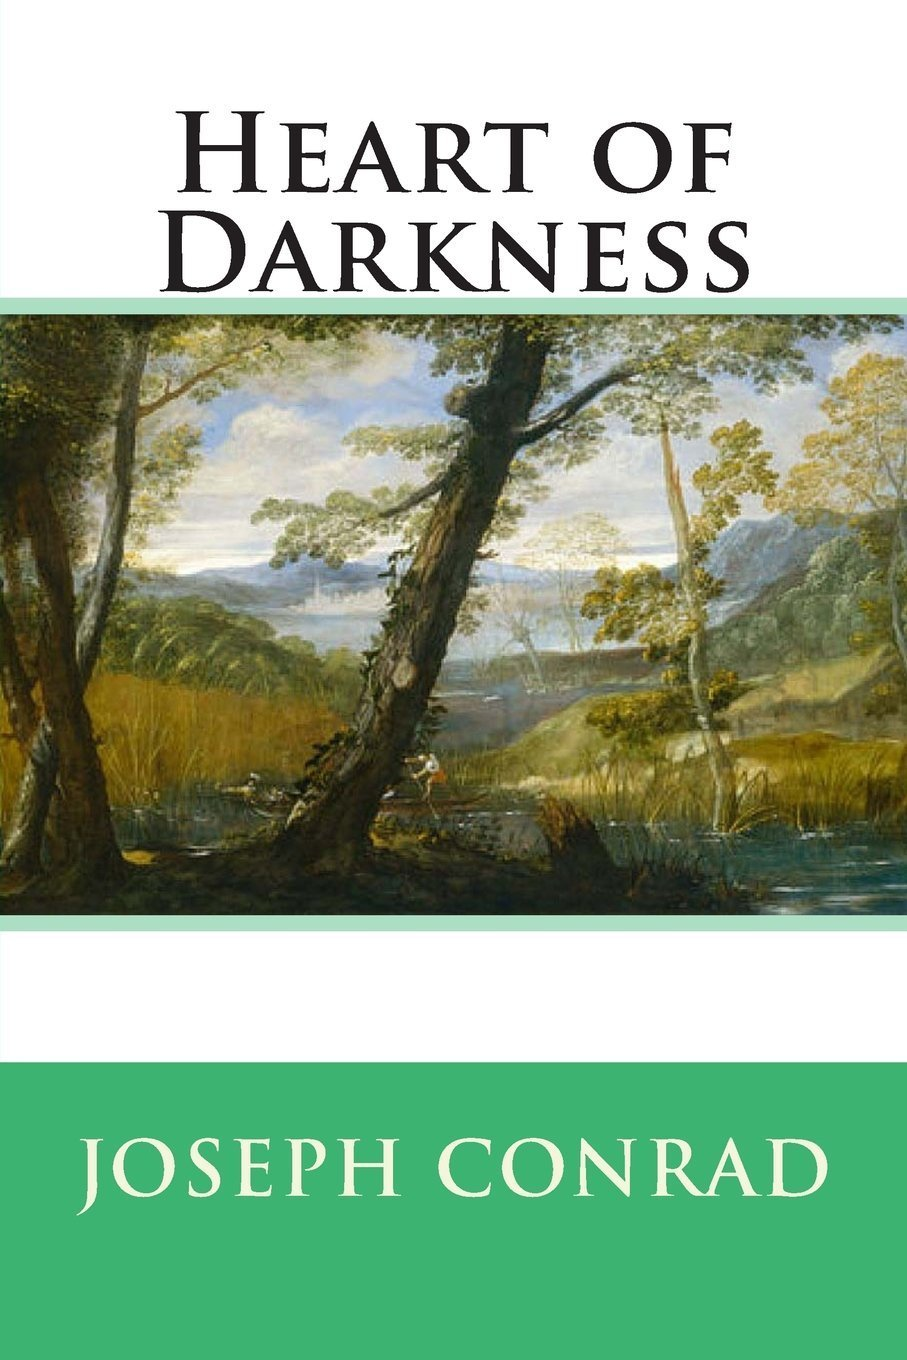 a literary analysis of social justice in heart of darkness by joseph conrad Joseph conrad, book reviews, heart of darkness, literary criticism heart of darkness perception of morality affected by the evolving social structures in ben jonson's volpone individuals have their own culture and social structure.